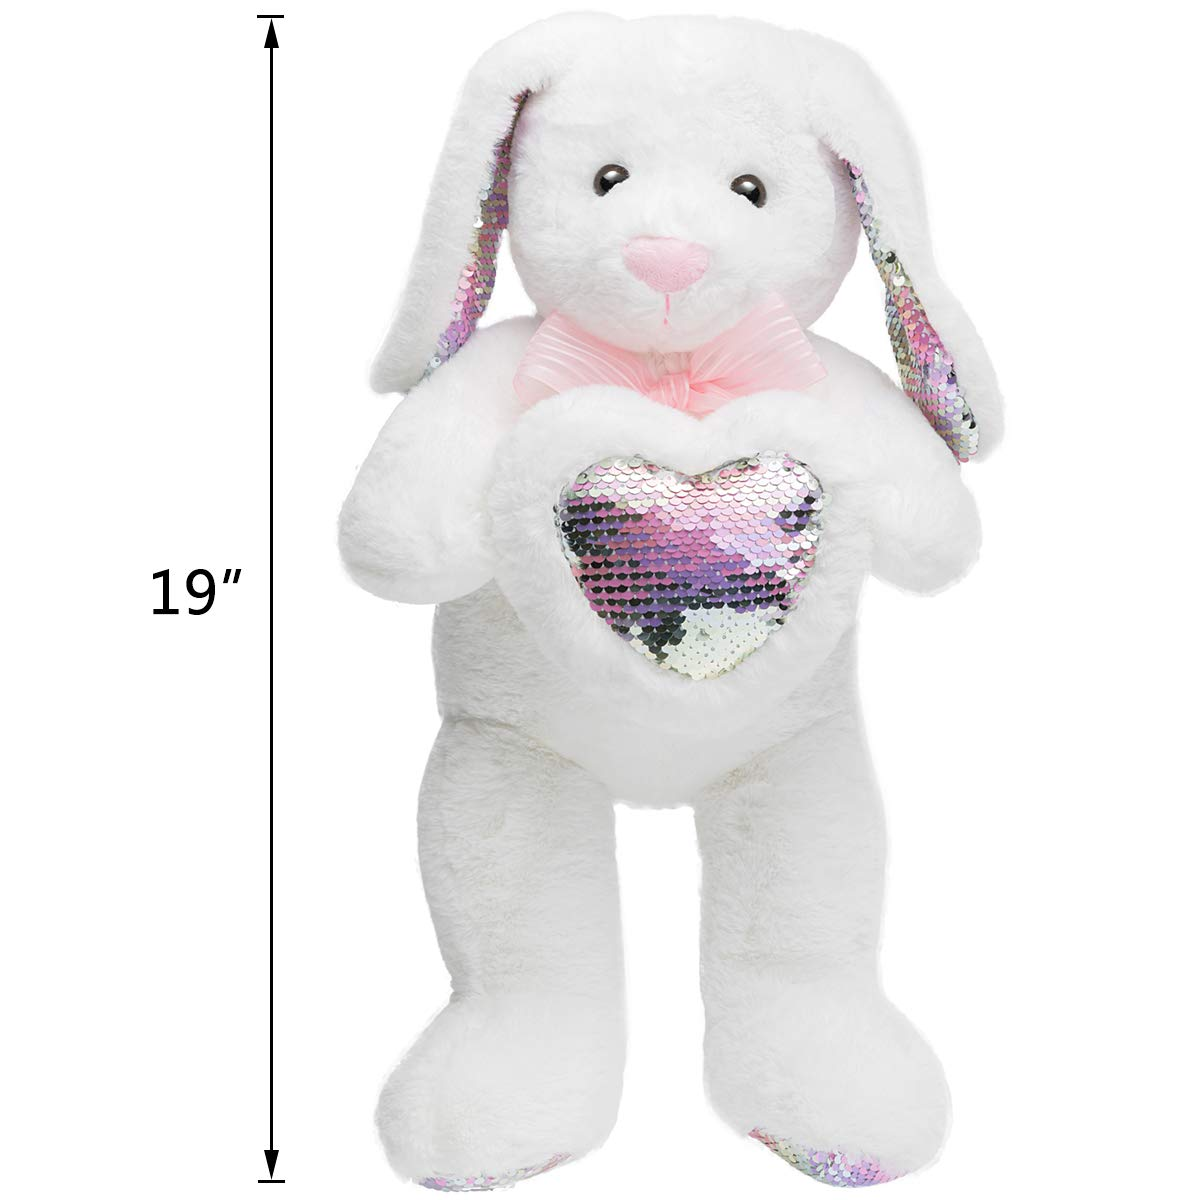 HollyHOME Sequins Bunny Eater Stuffed Animal Long Eard Plush Rabbit Holding Reversible Sequins Heart Pillow 19 Inches White